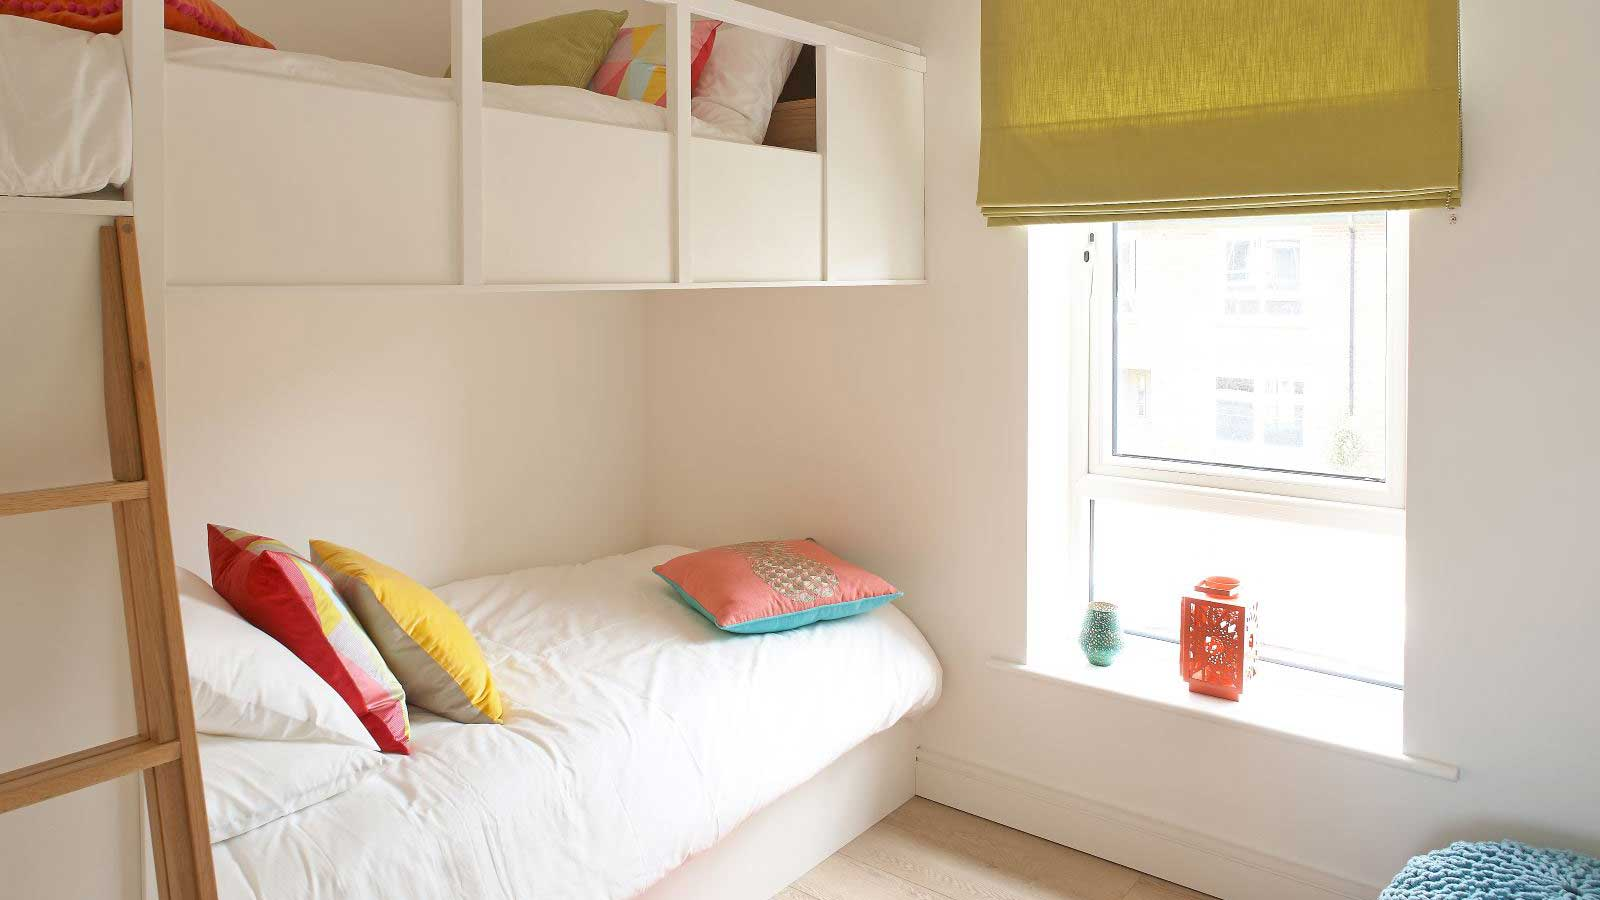 Custom designed and fitted built-in beds, offaly